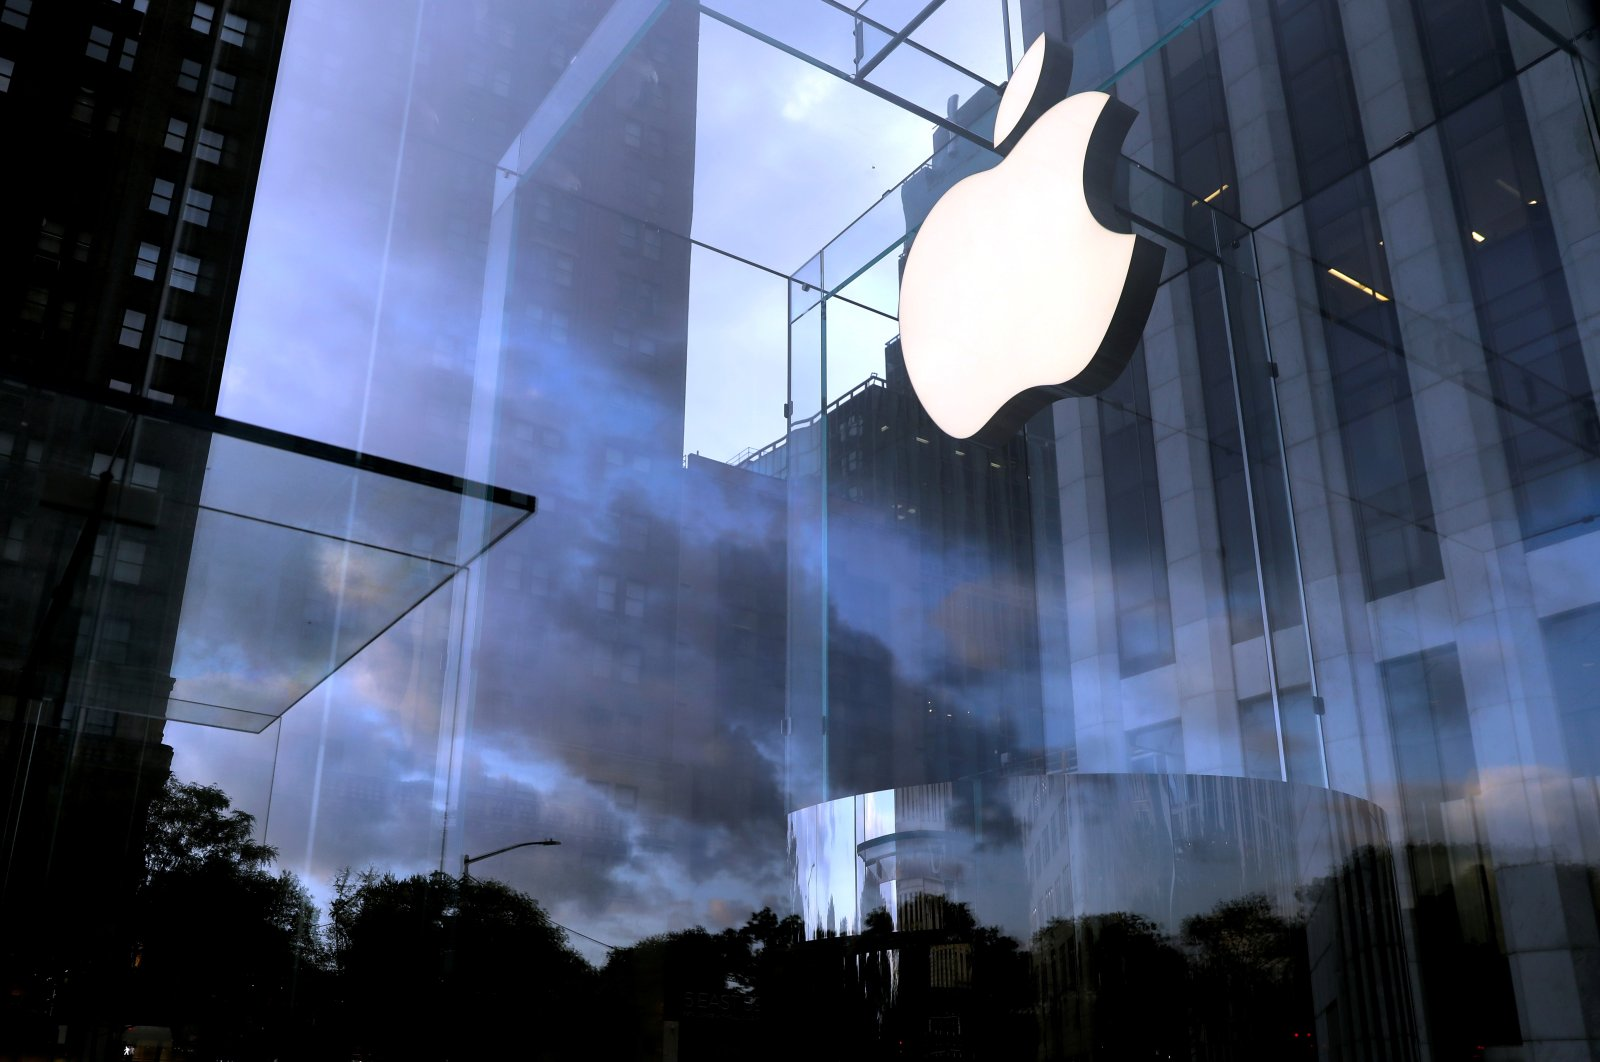 The Apple Inc. logo is seen hanging at the entrance to the Apple store on 5th Avenue in Manhattan, New York, U.S., on Oct. 16, 2019. (REUTERS Photo)